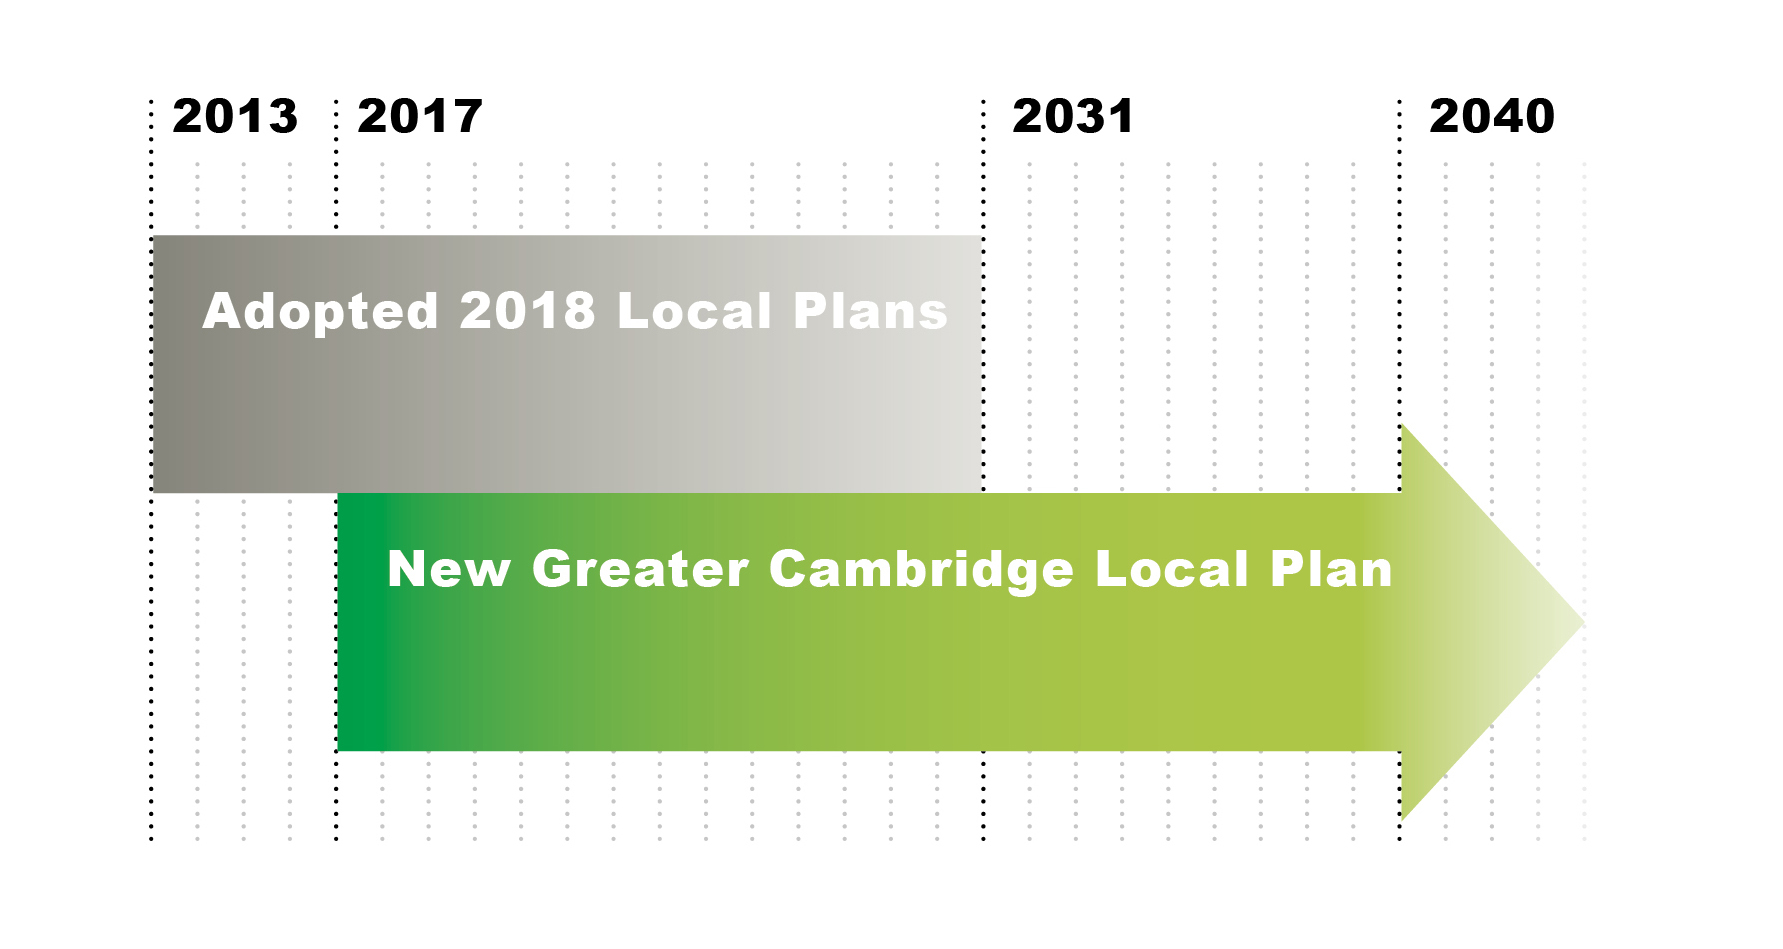 Diagram showing the adopted 2018 Local Plans running 2013- 2031 and the next Local Plan starting in 2017 and extending to 2040 and possibly beyond